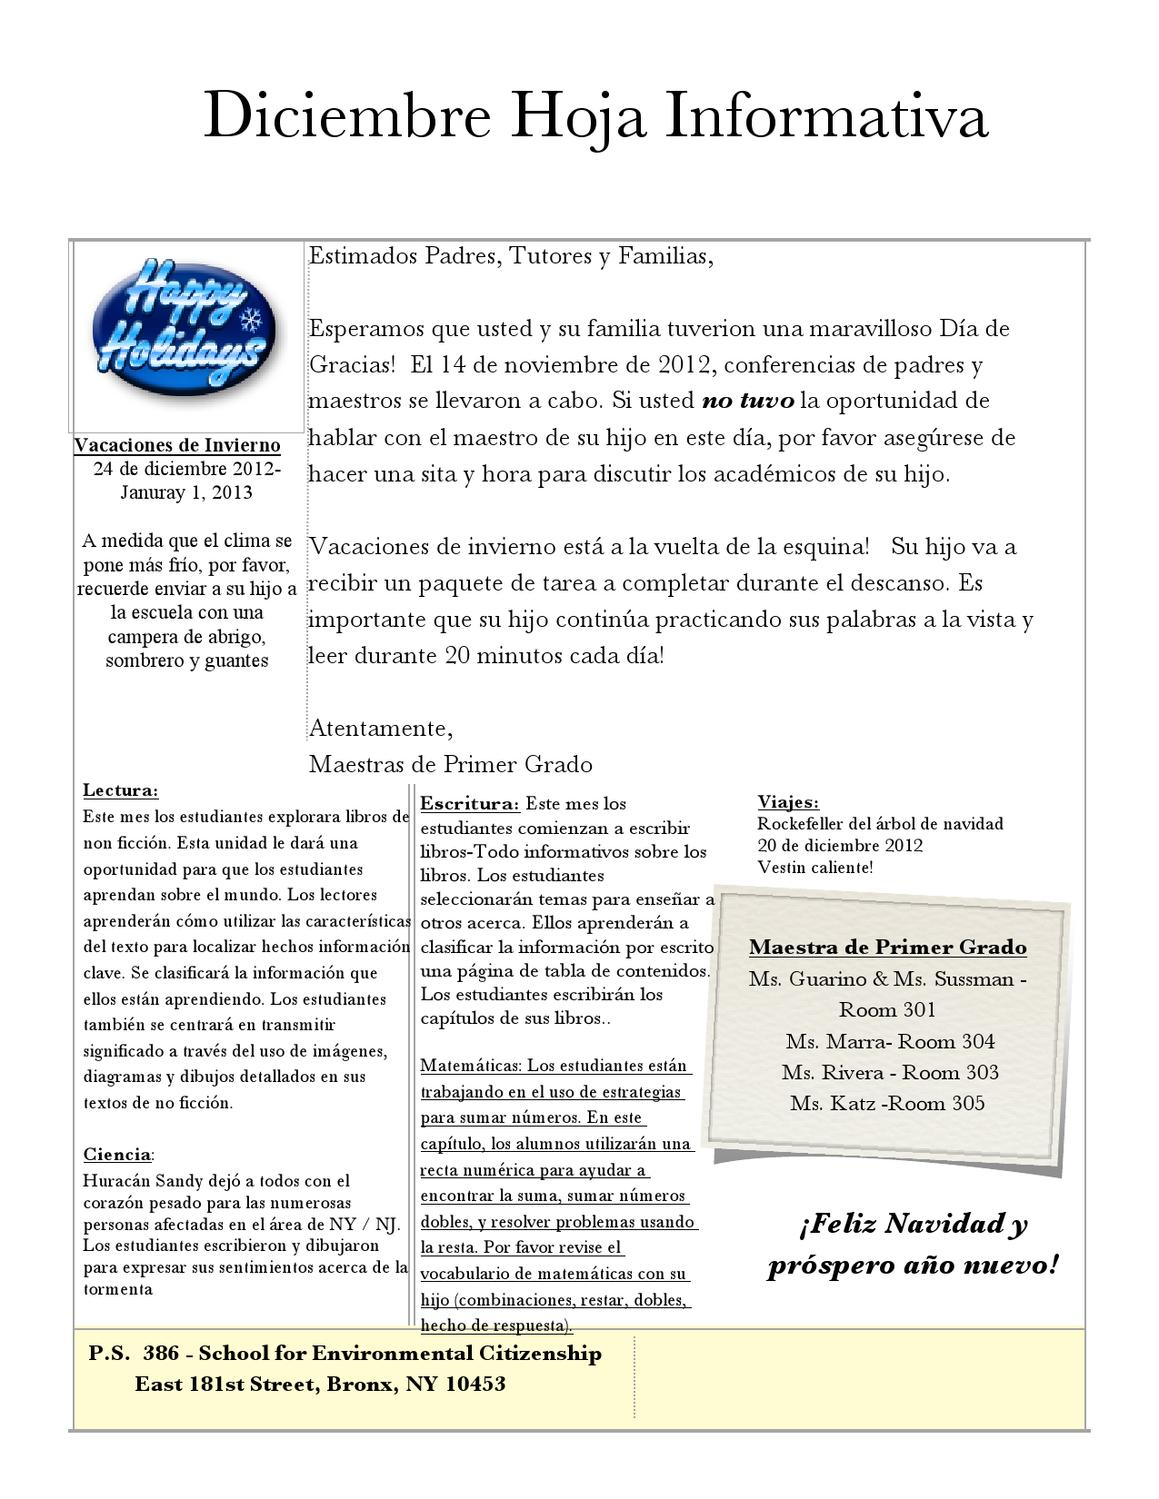 386 December 1st grade news letter spanish by Daniel Hocker - issuu